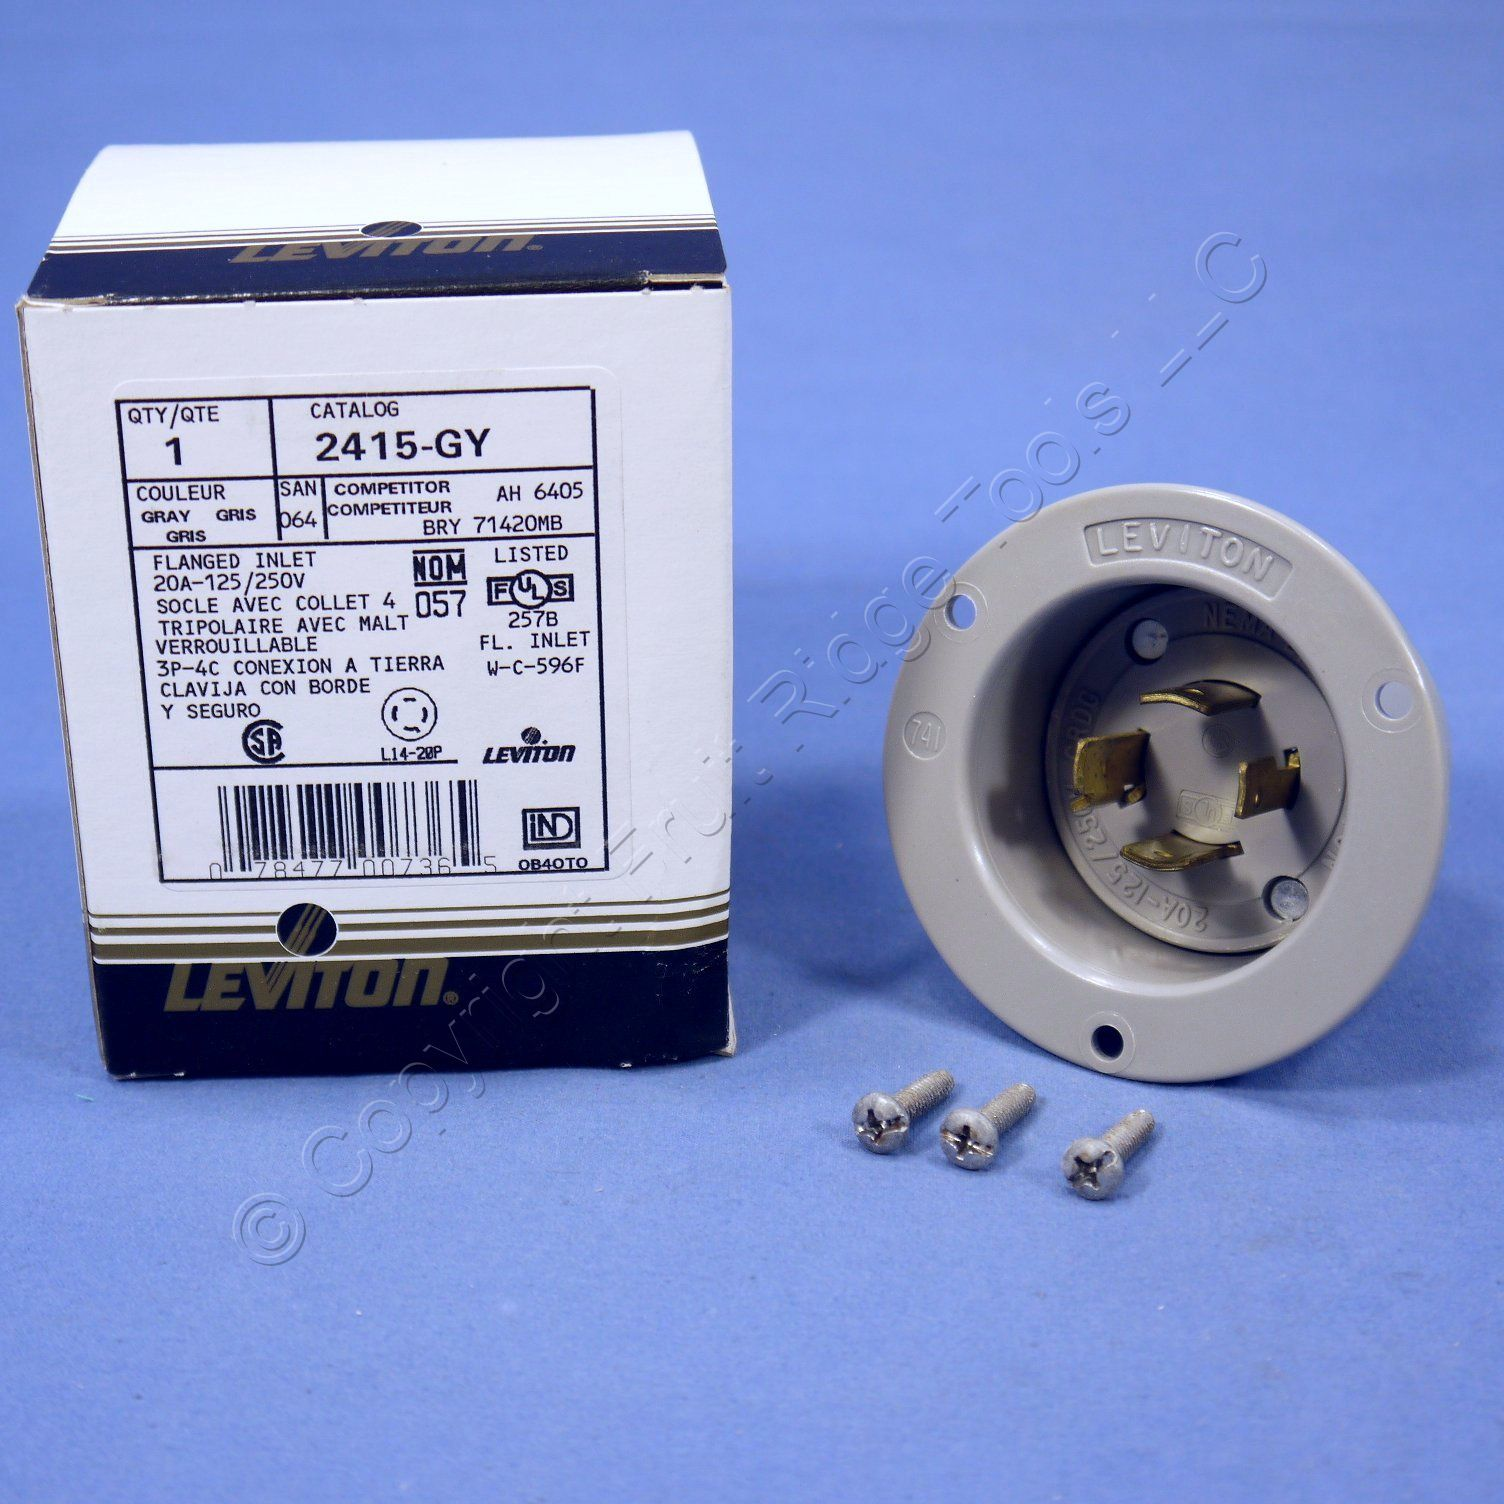 Leviton Gray L14 20p Locking Flanged Inlet Turn Twist Plug 20a 125 Wiring Diagram 250v 2415 Gy